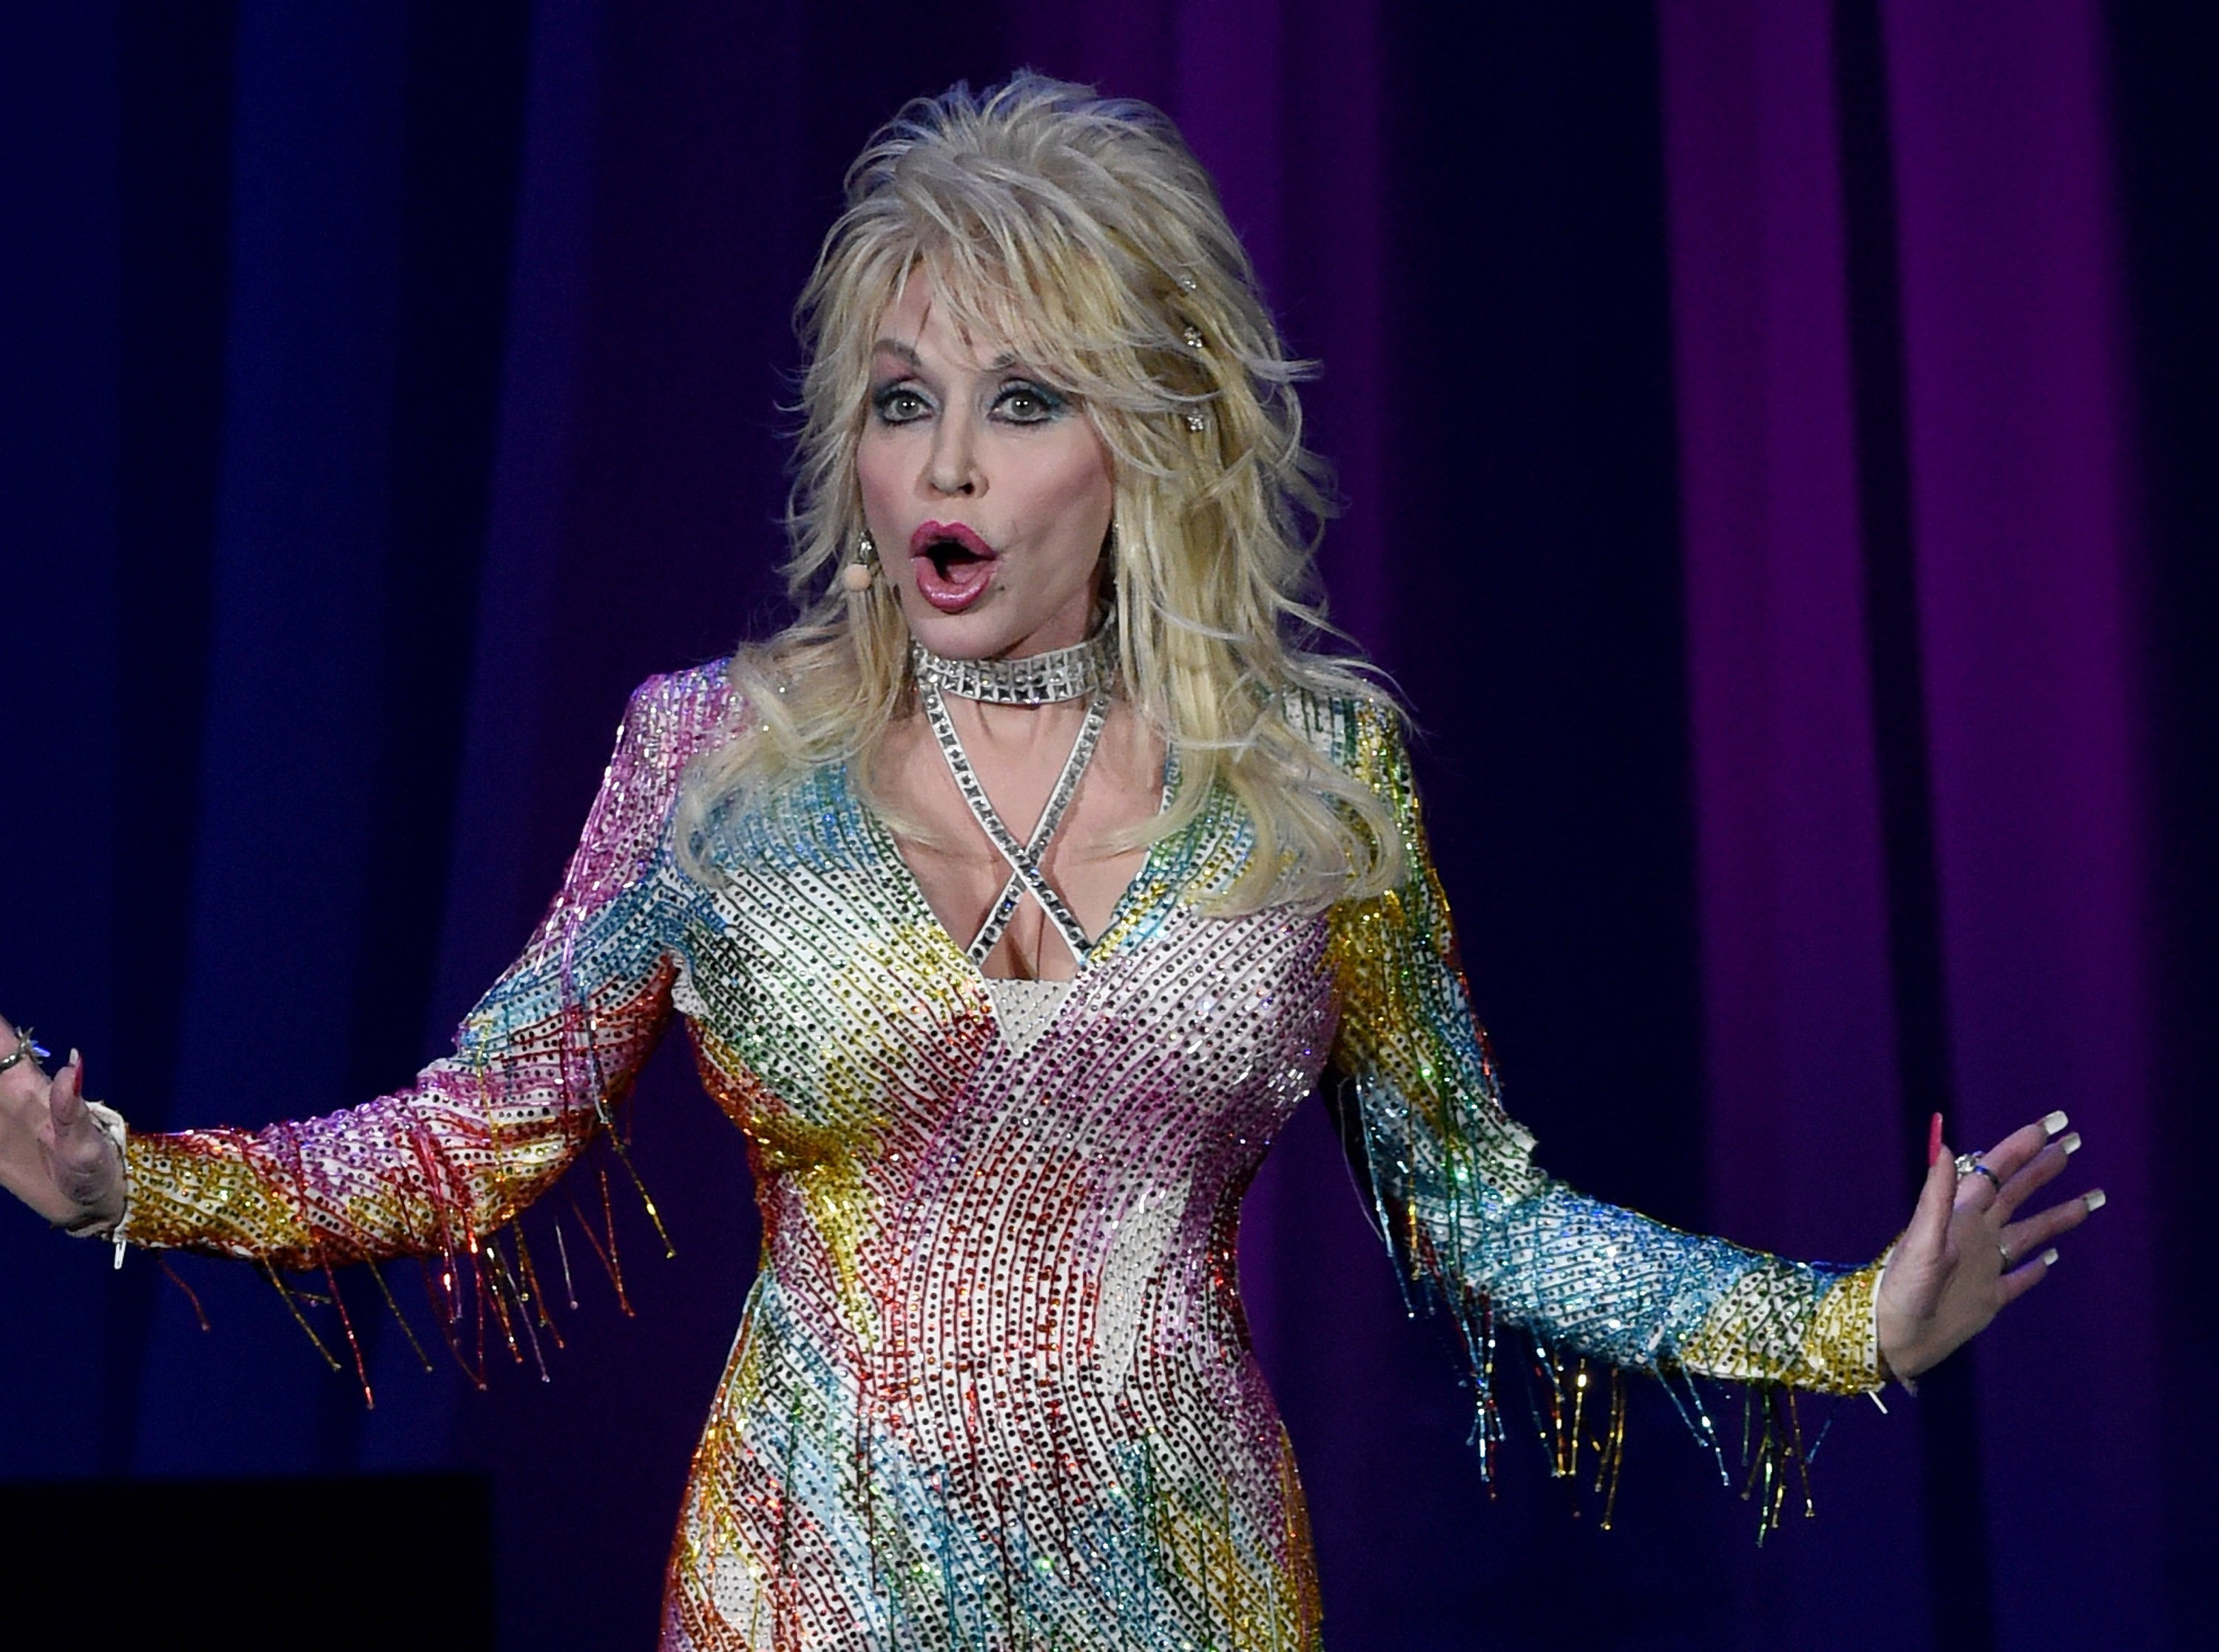 Dolly Parton at Pure & Simple Benefiting the Opry Trust Fund in Nashville, Tennessee on August 1, 2015 | Photo: Getty Images